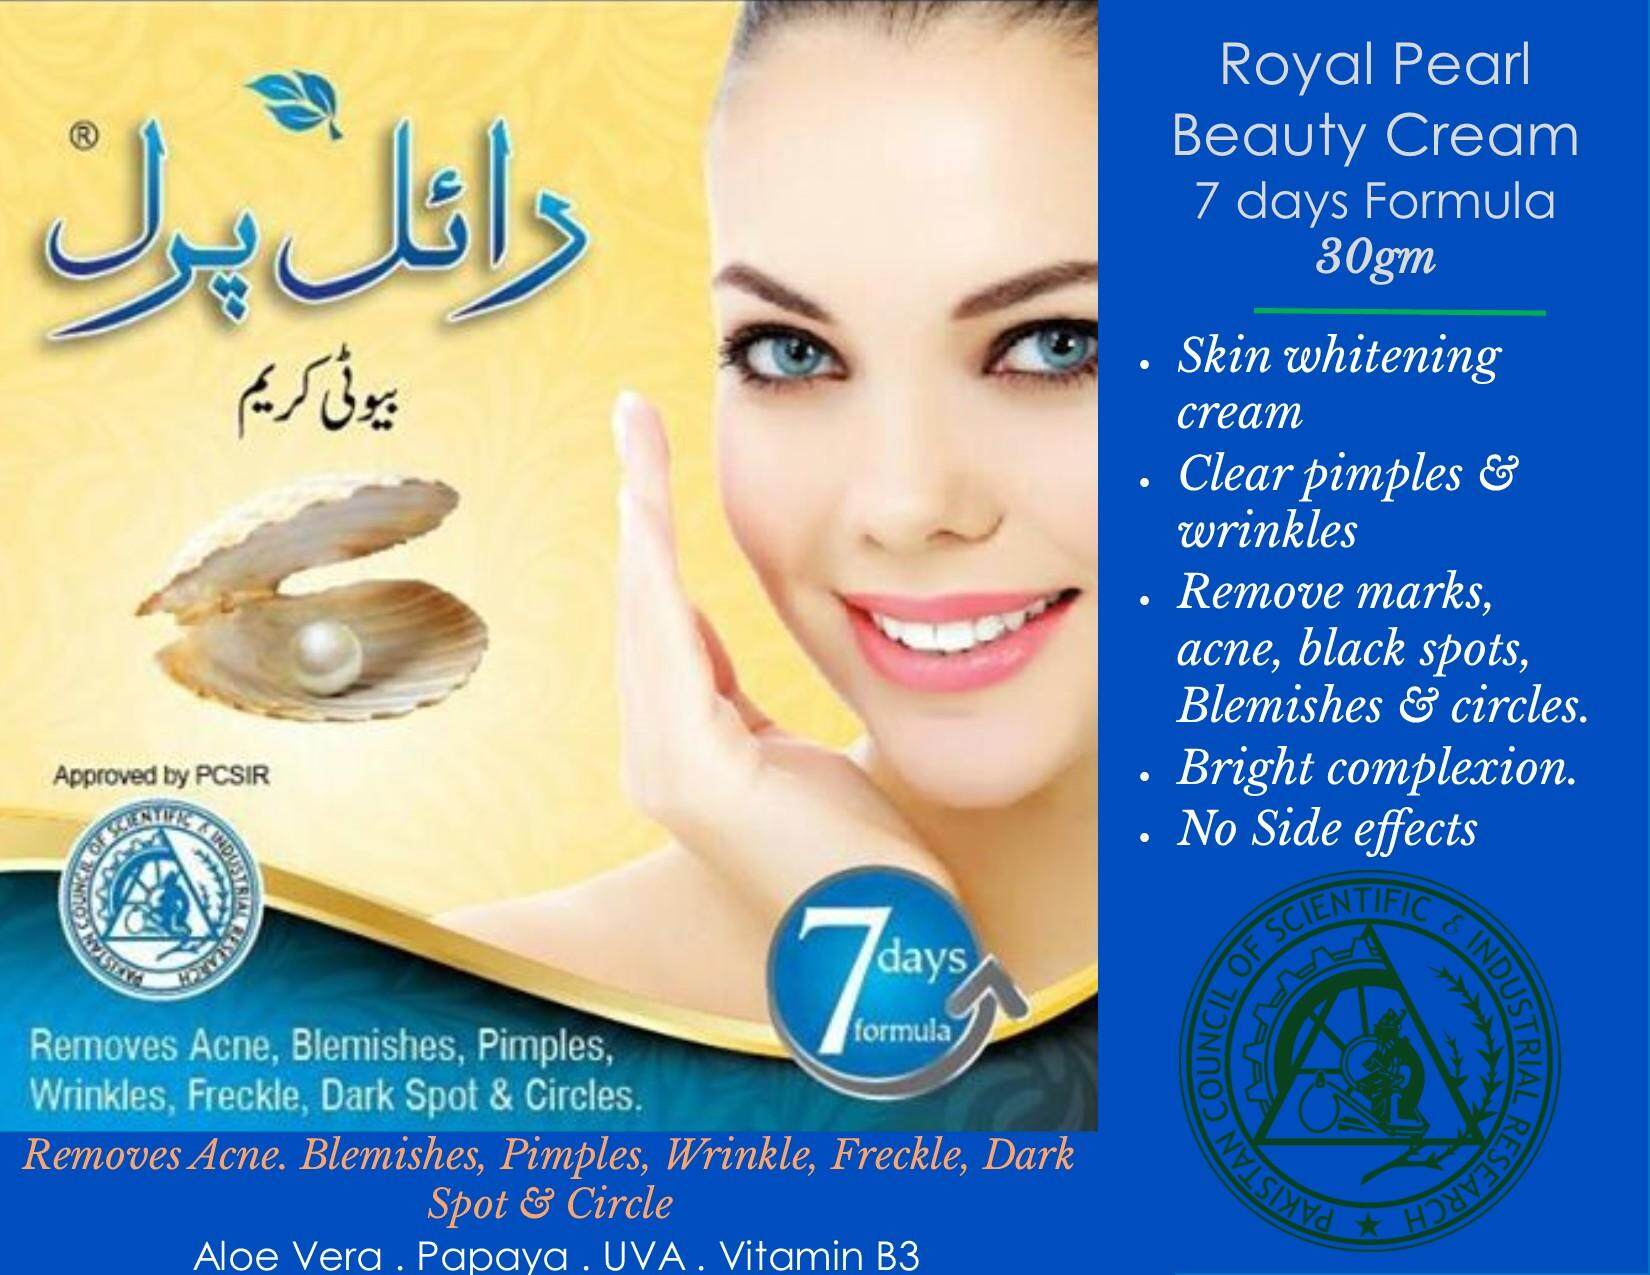 Royal Pearl Beauty Cream 7 Days Formula 30gm By Raison- Raihan Maju Empire.